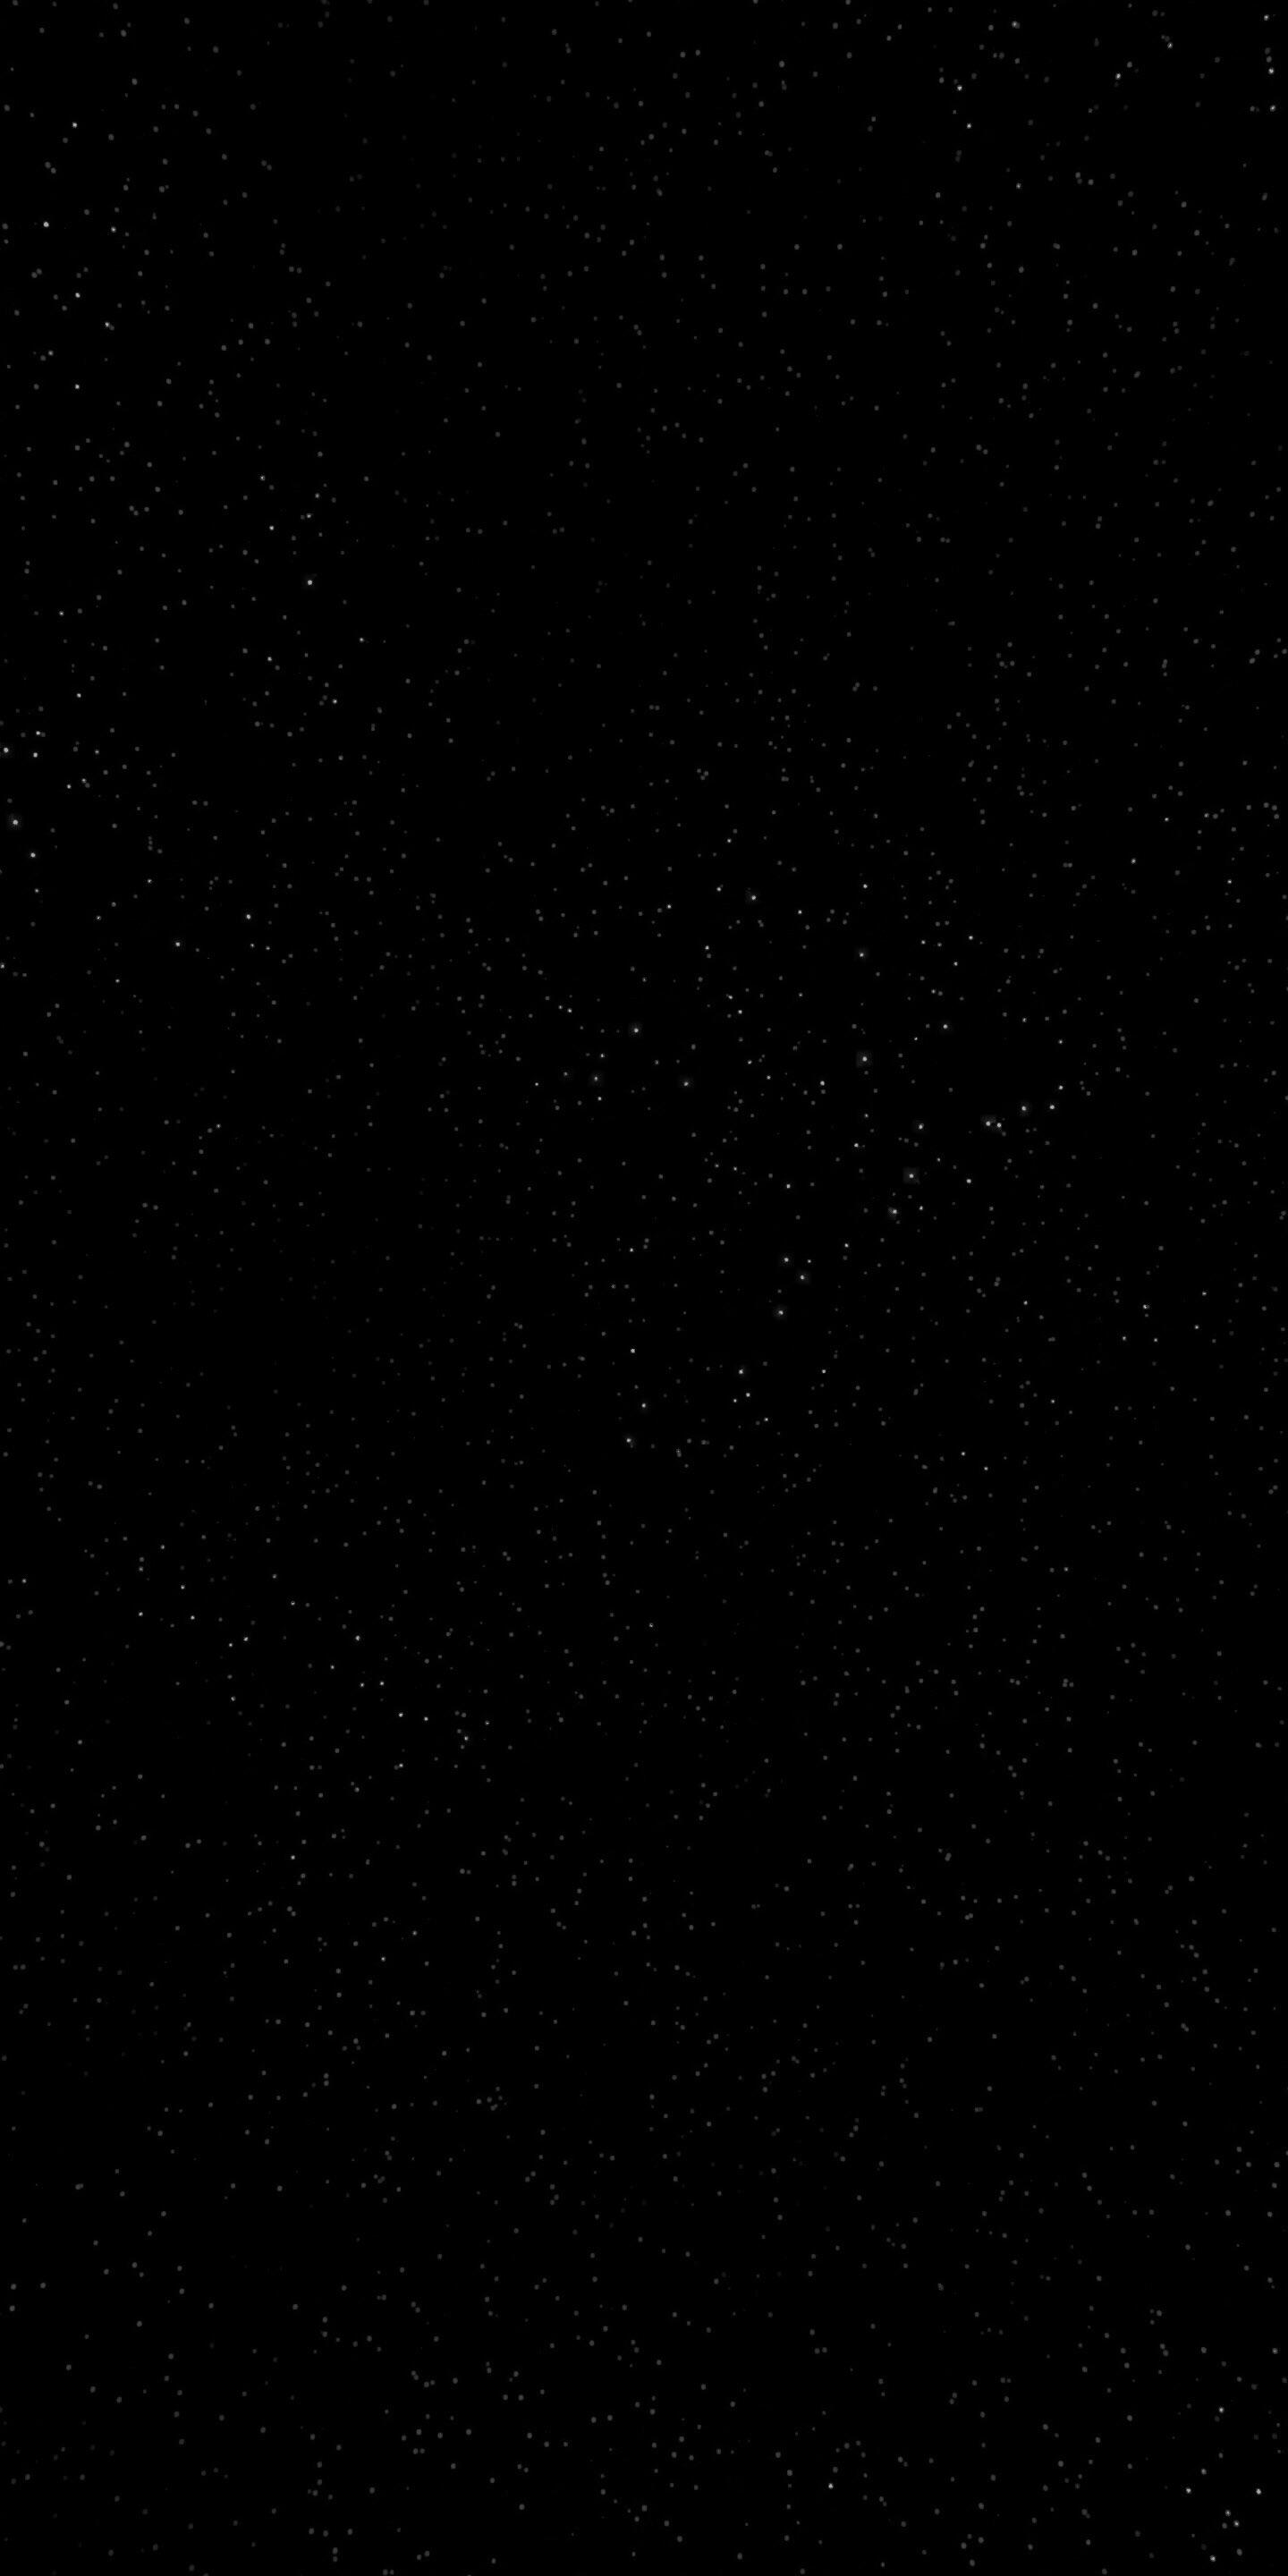 So I Wanted A Black Wallpaper For My Iphone X But Found True Black Too Boring This Is What I Found I Think It S By Far The Cleanest And Best Looking Star